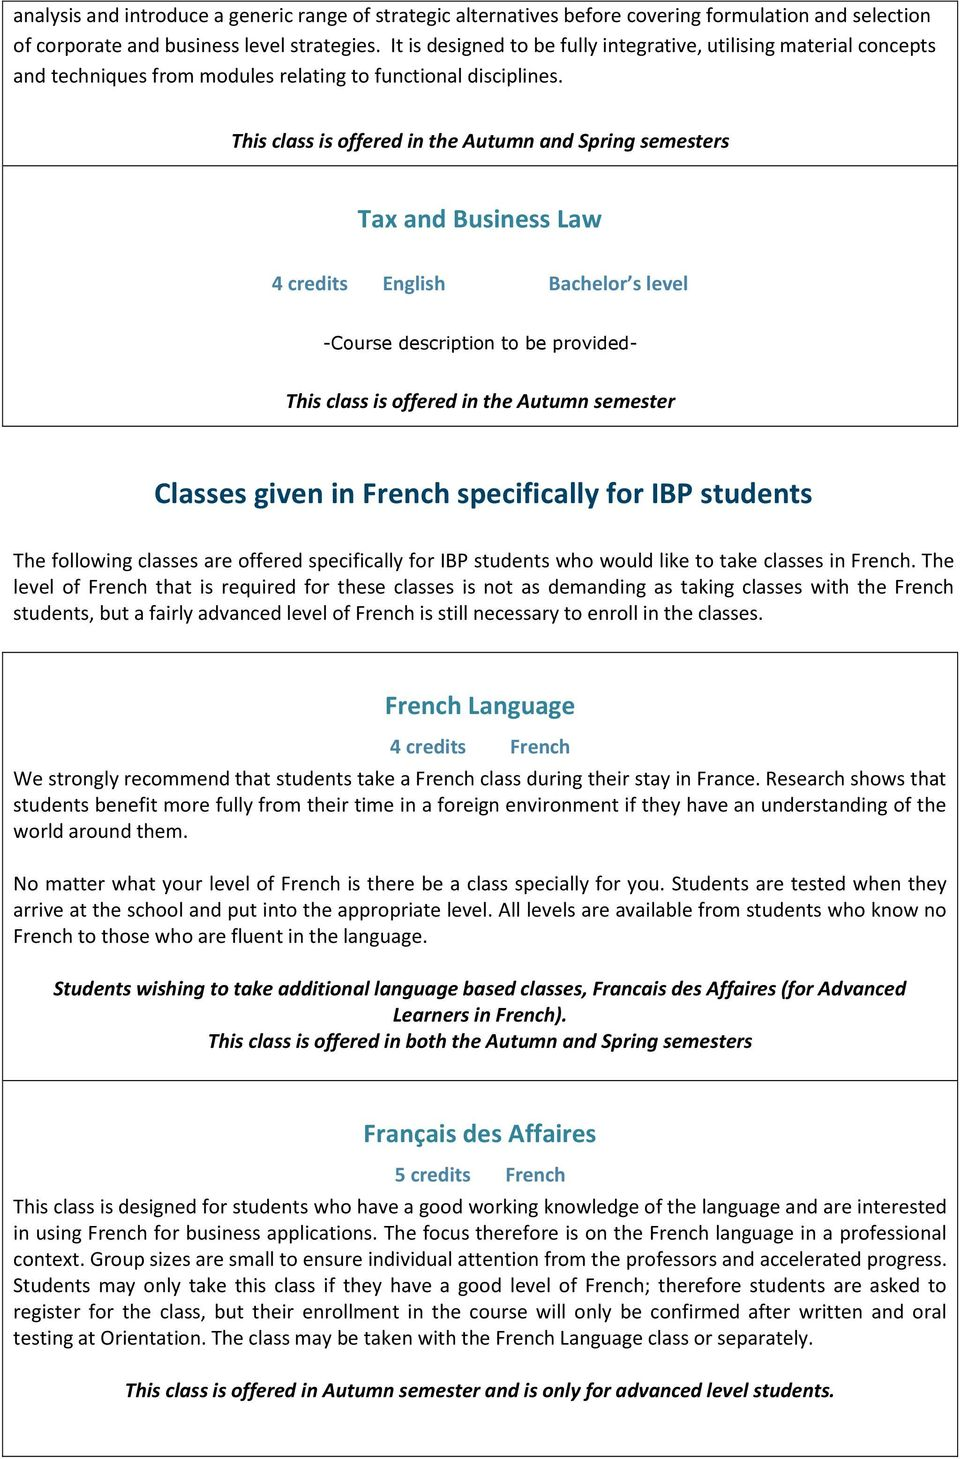 This class is offered in the Autumn and Spring semesters Tax and Business Law -Course description to be provided- This class is offered in the Autumn semester Classes given in French specifically for